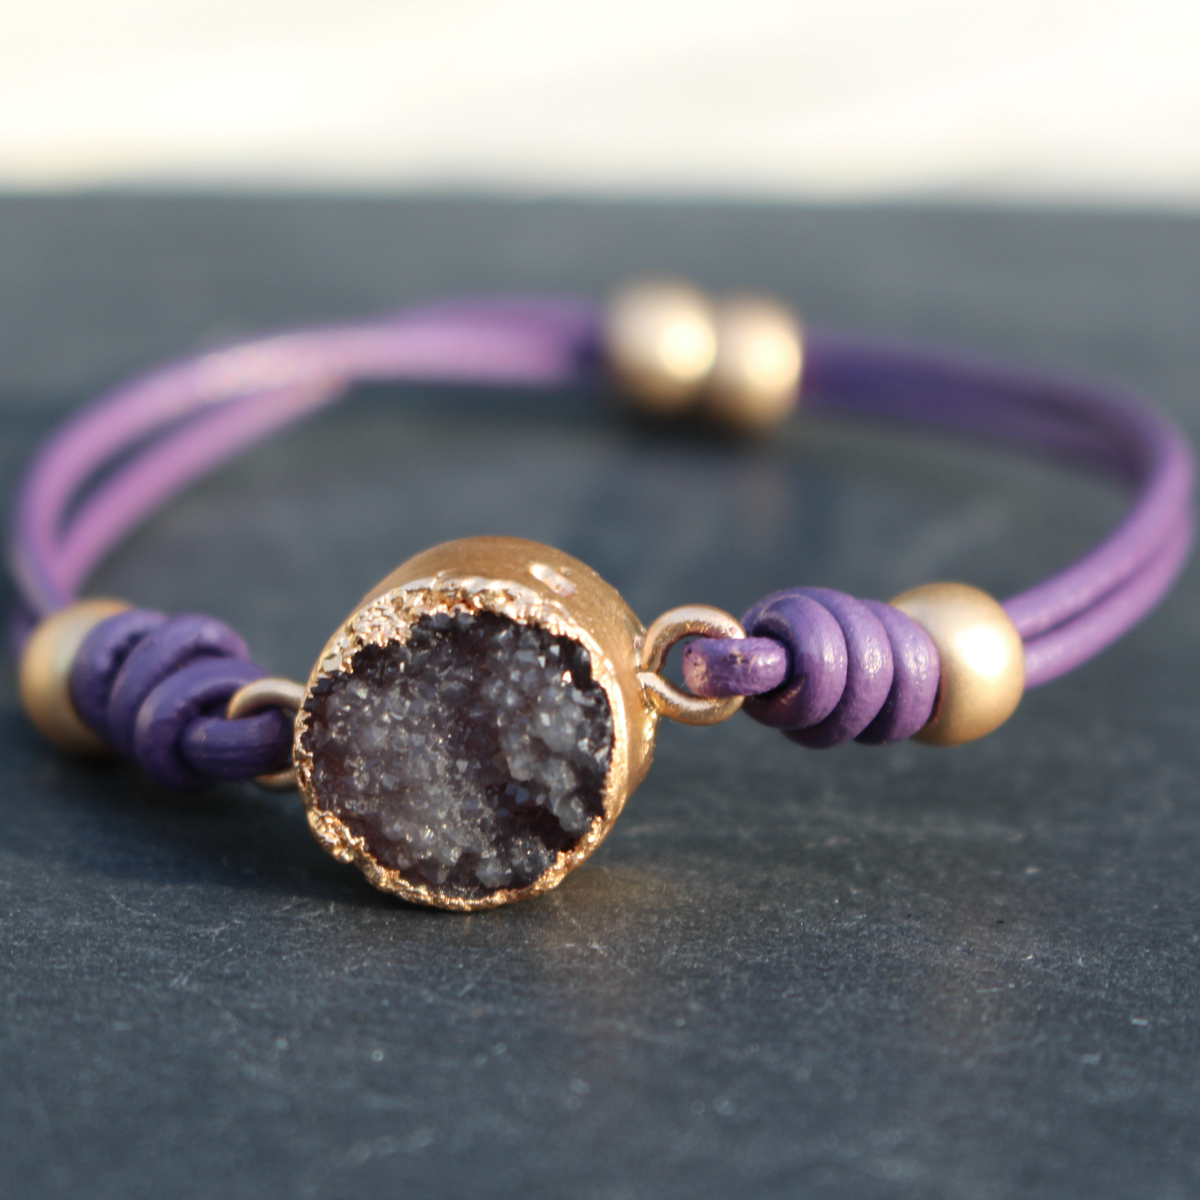 Hot Tomato Leather Lilac Bracelet with Amethyst Druzy